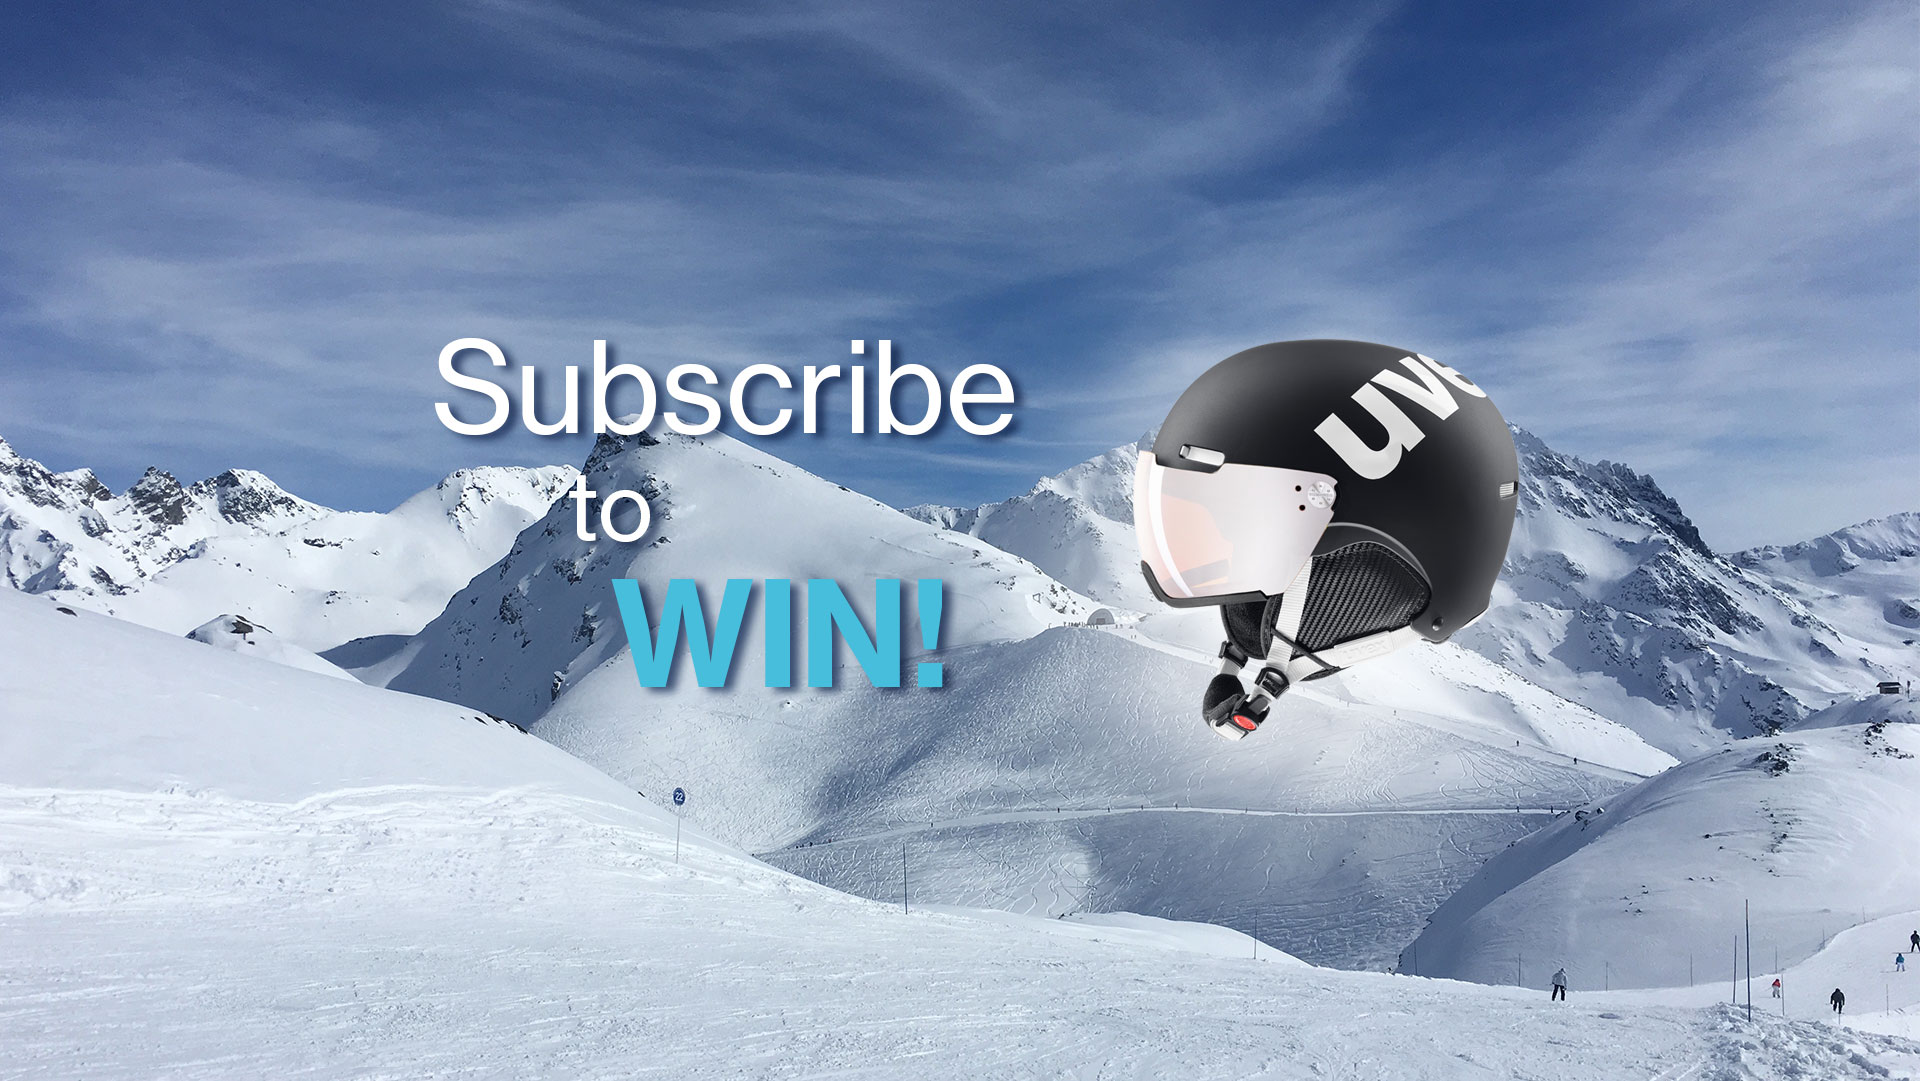 Subscribe to our newsletter to win